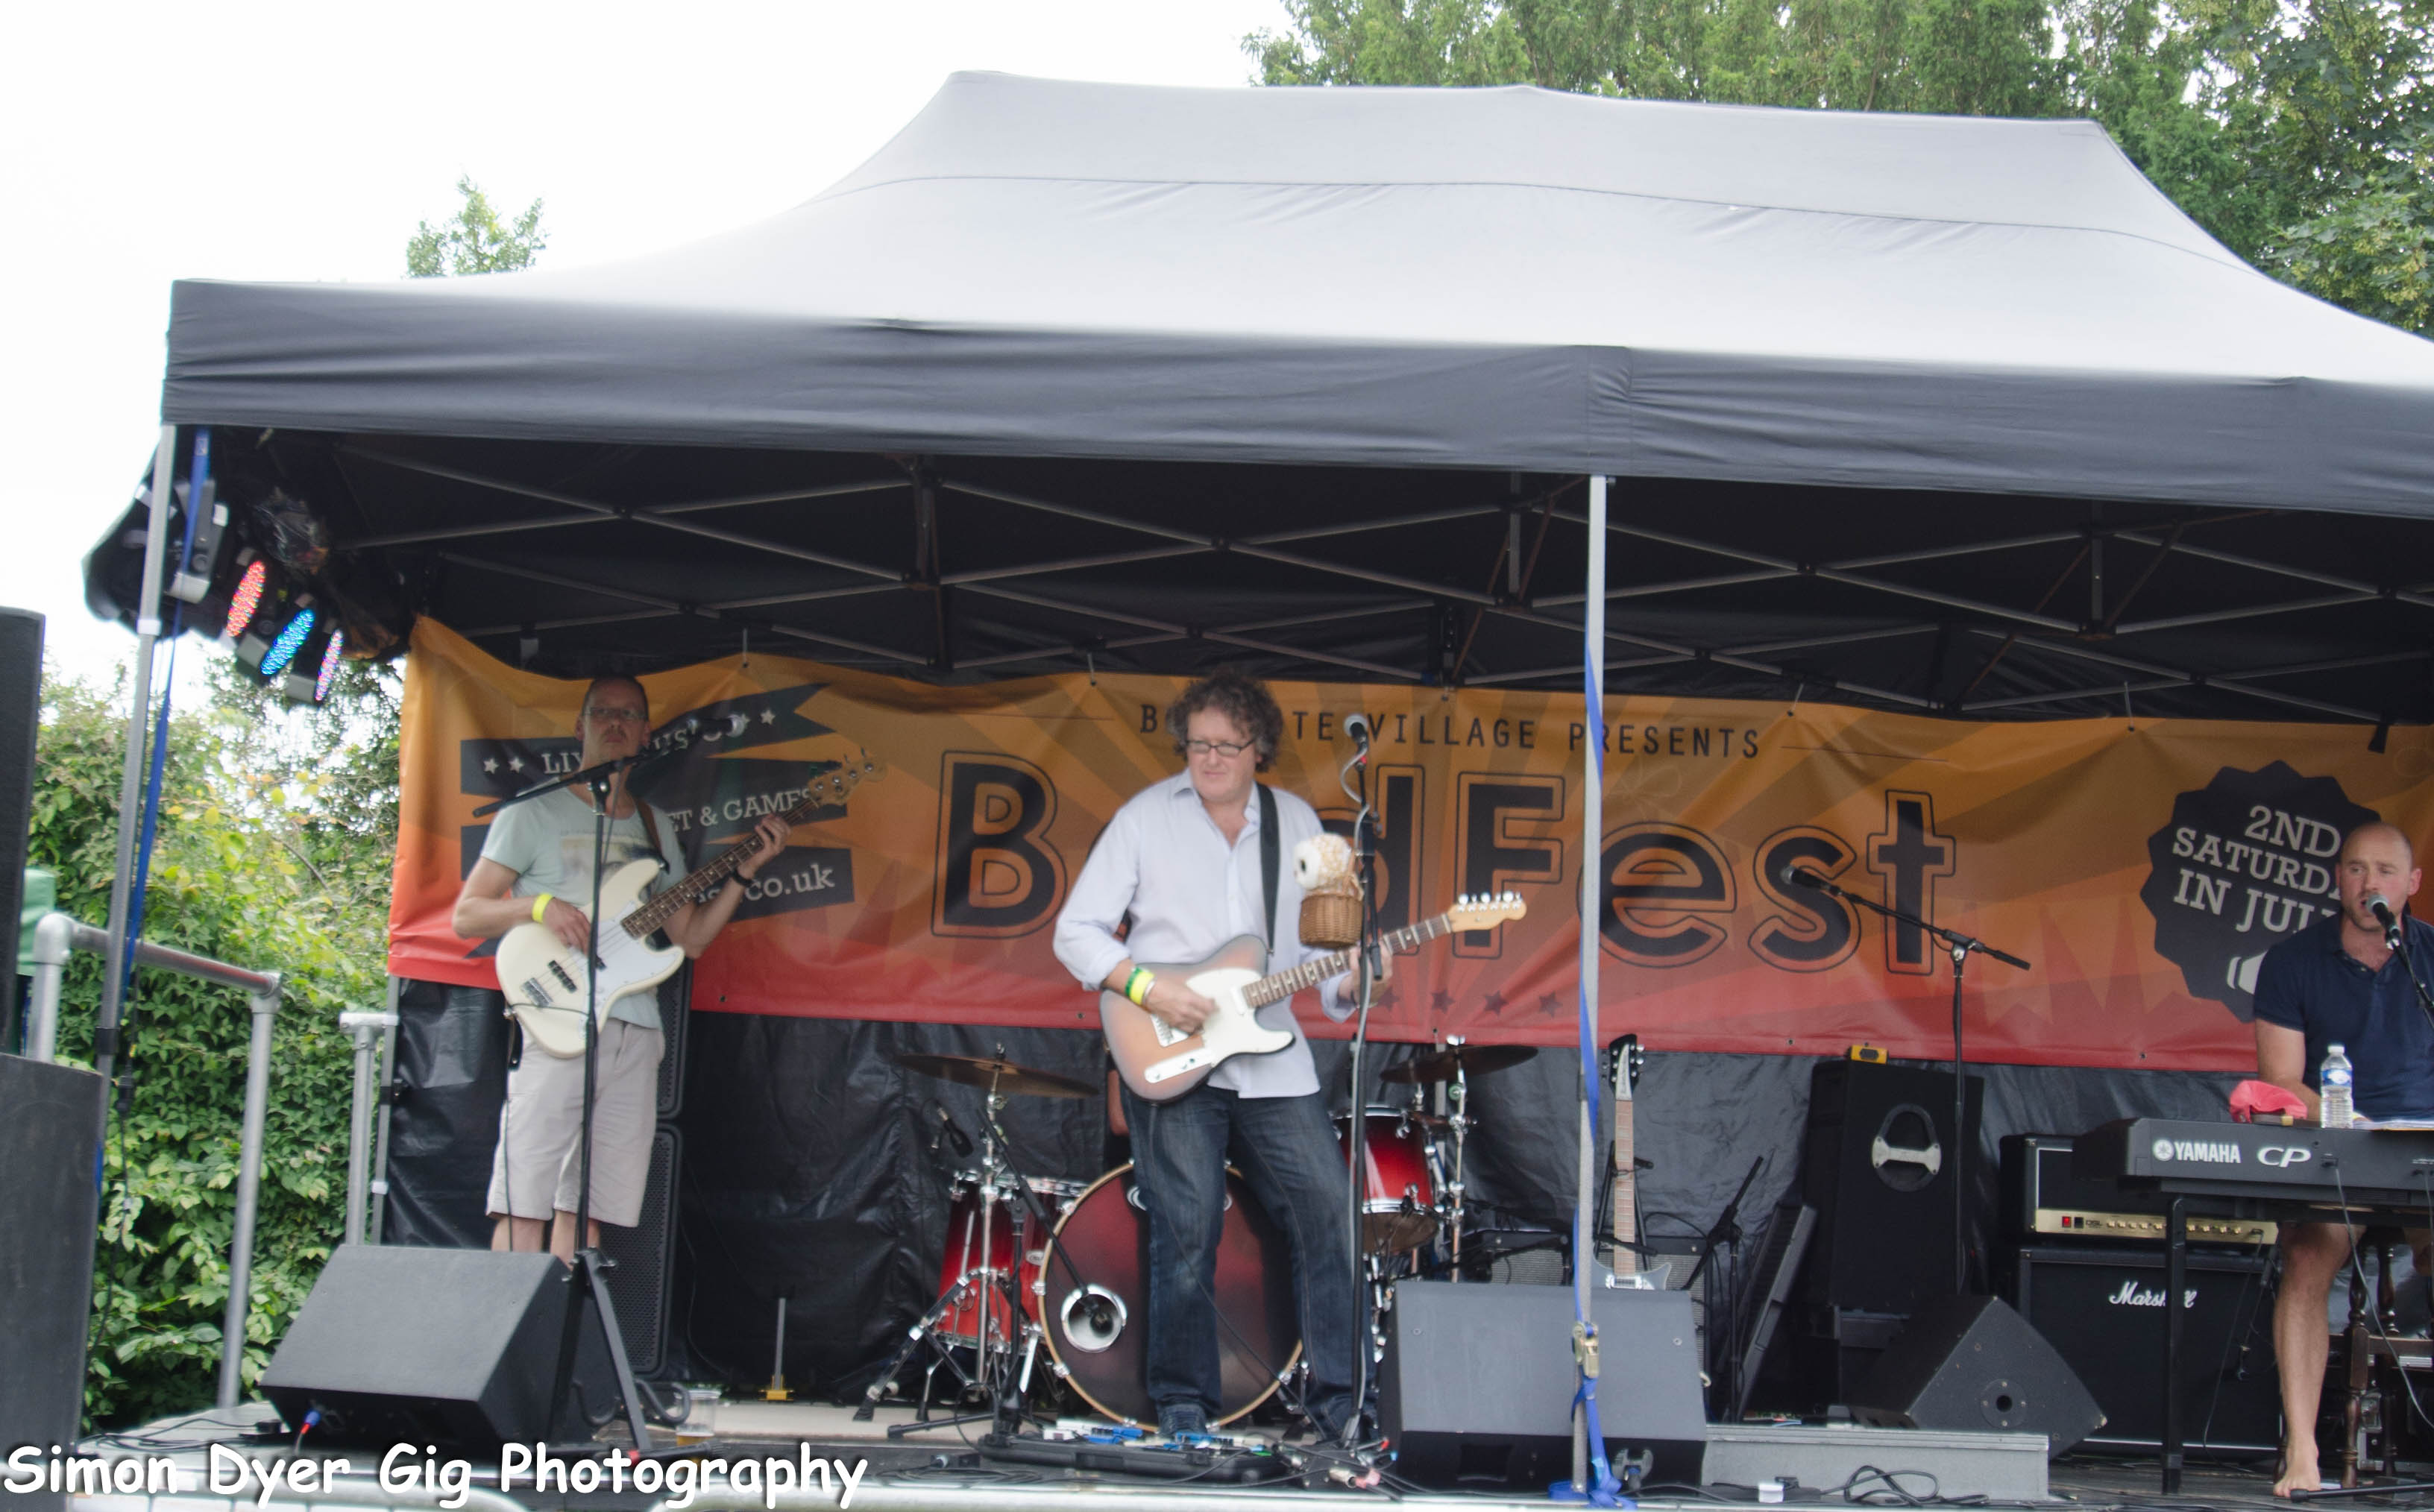 Bodfest and Chacombury Fest-021.jpg